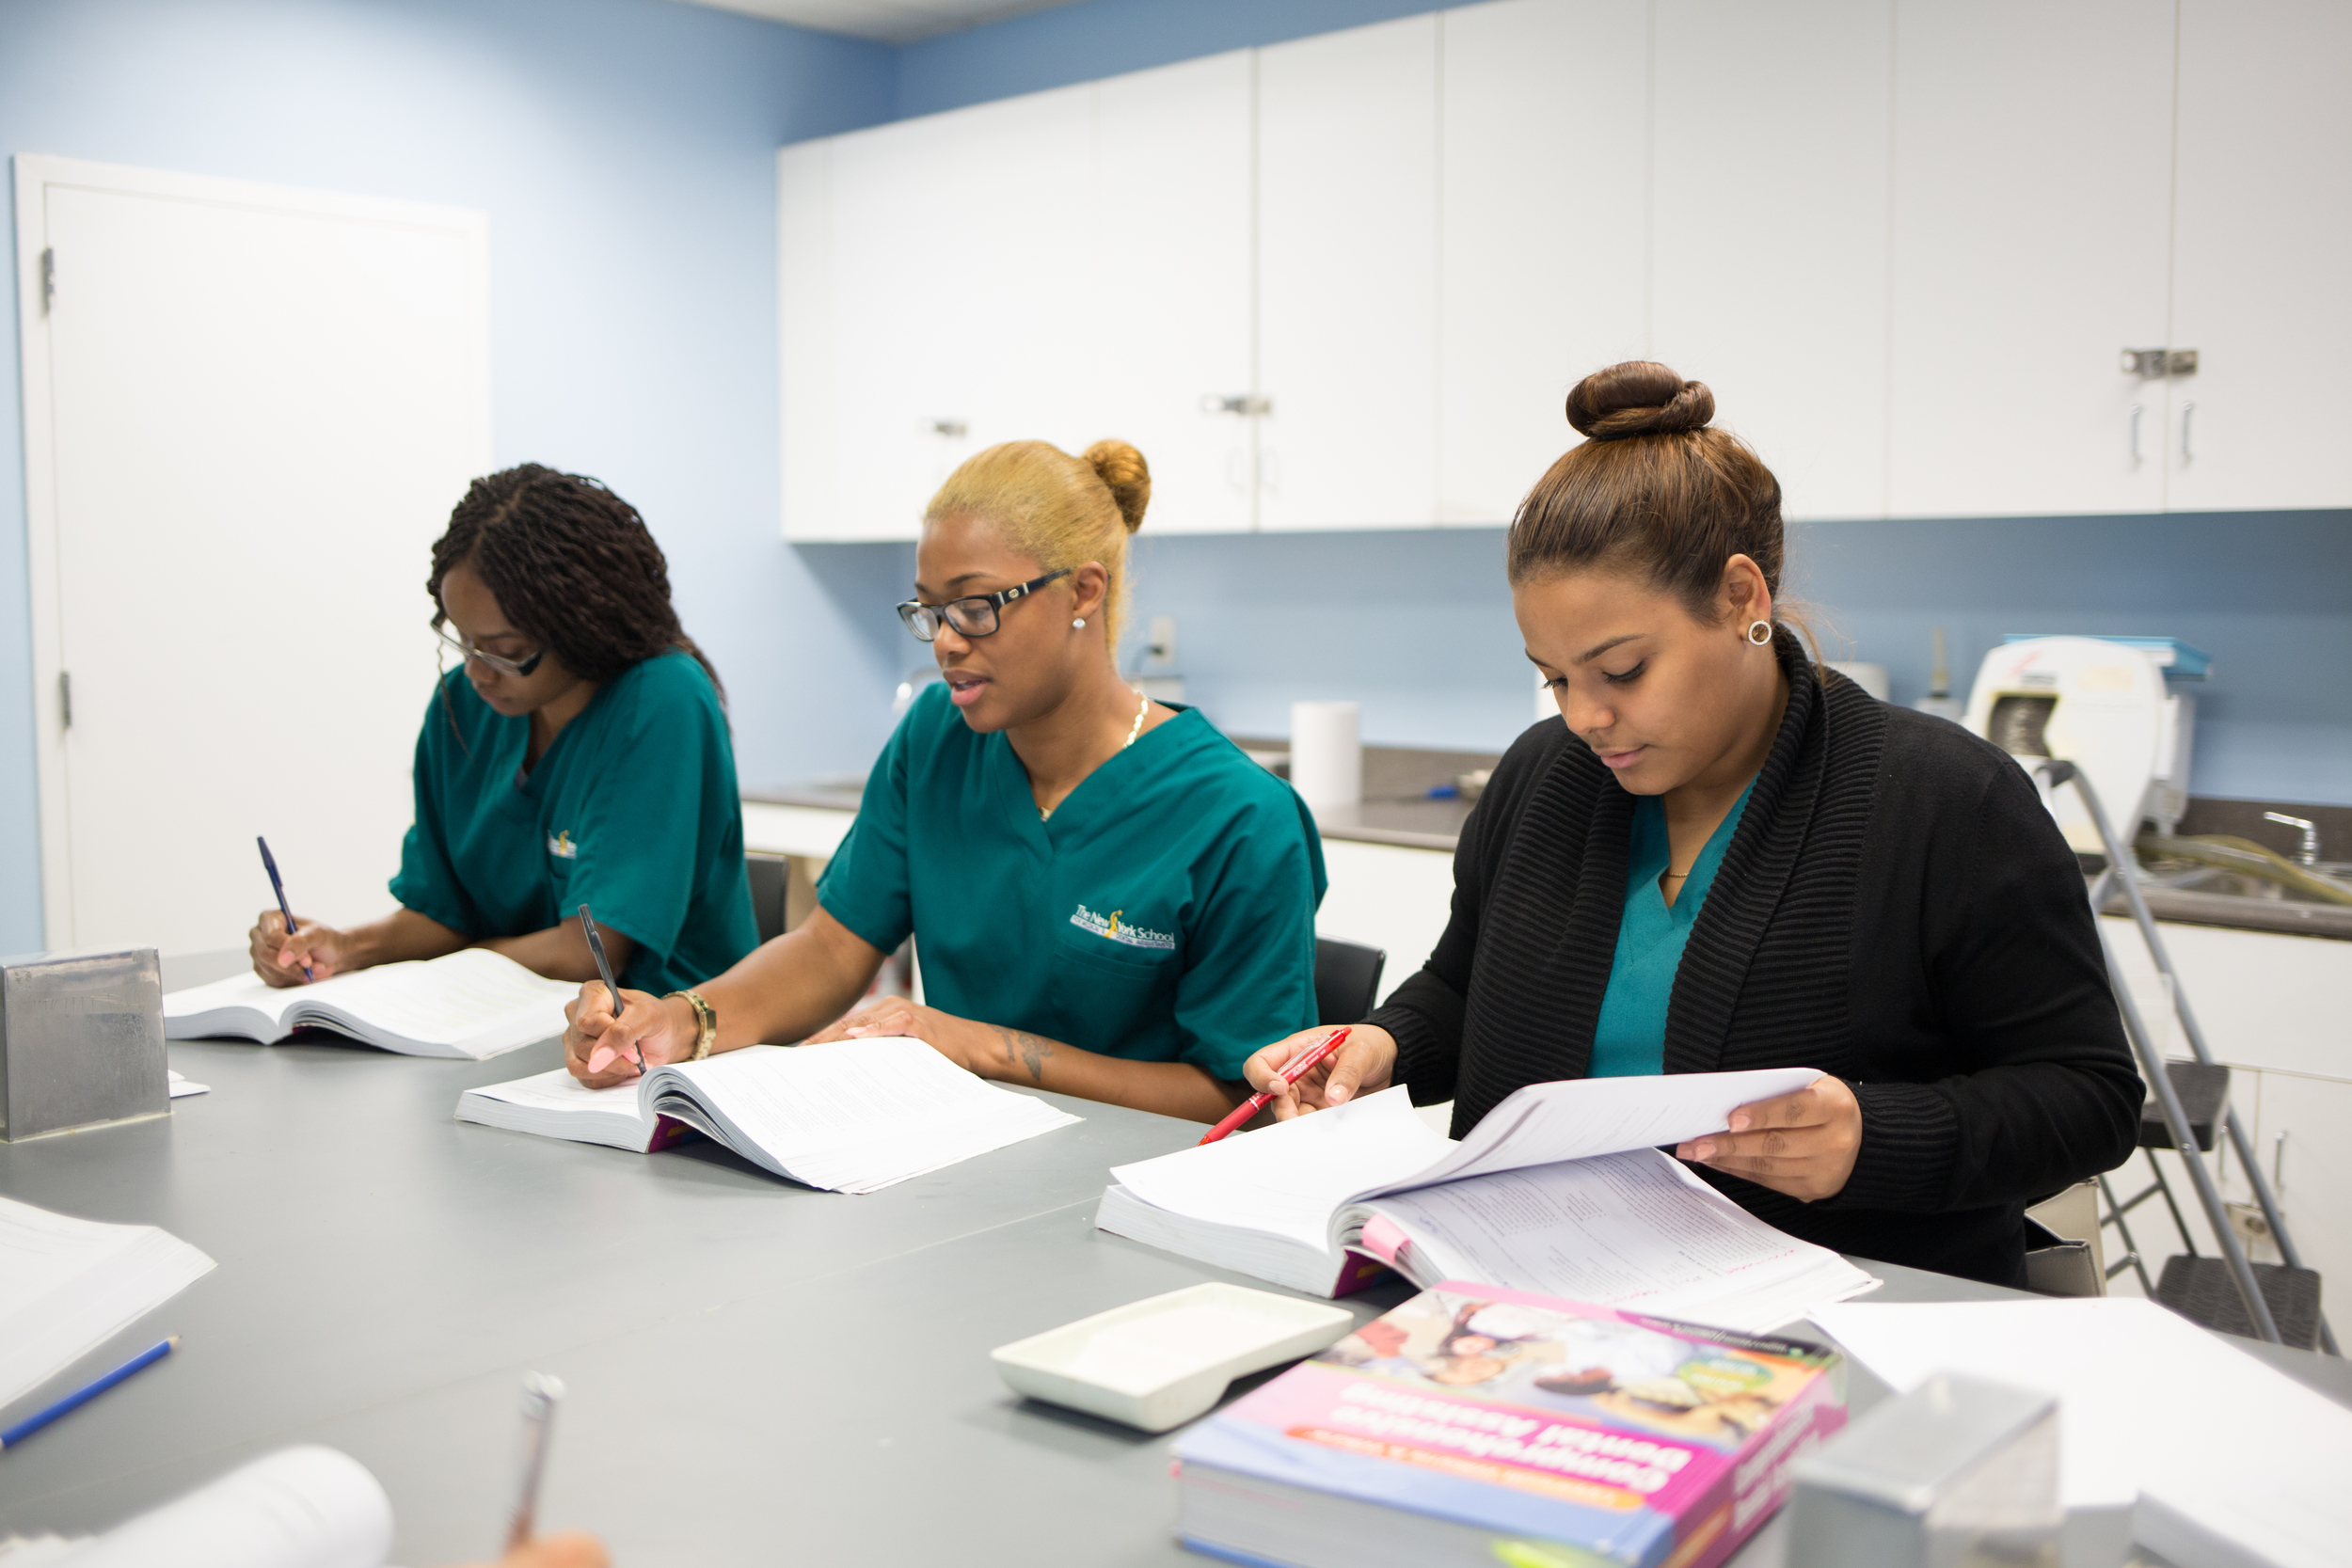 NYSMDA Dental Assistant Students in Classroom